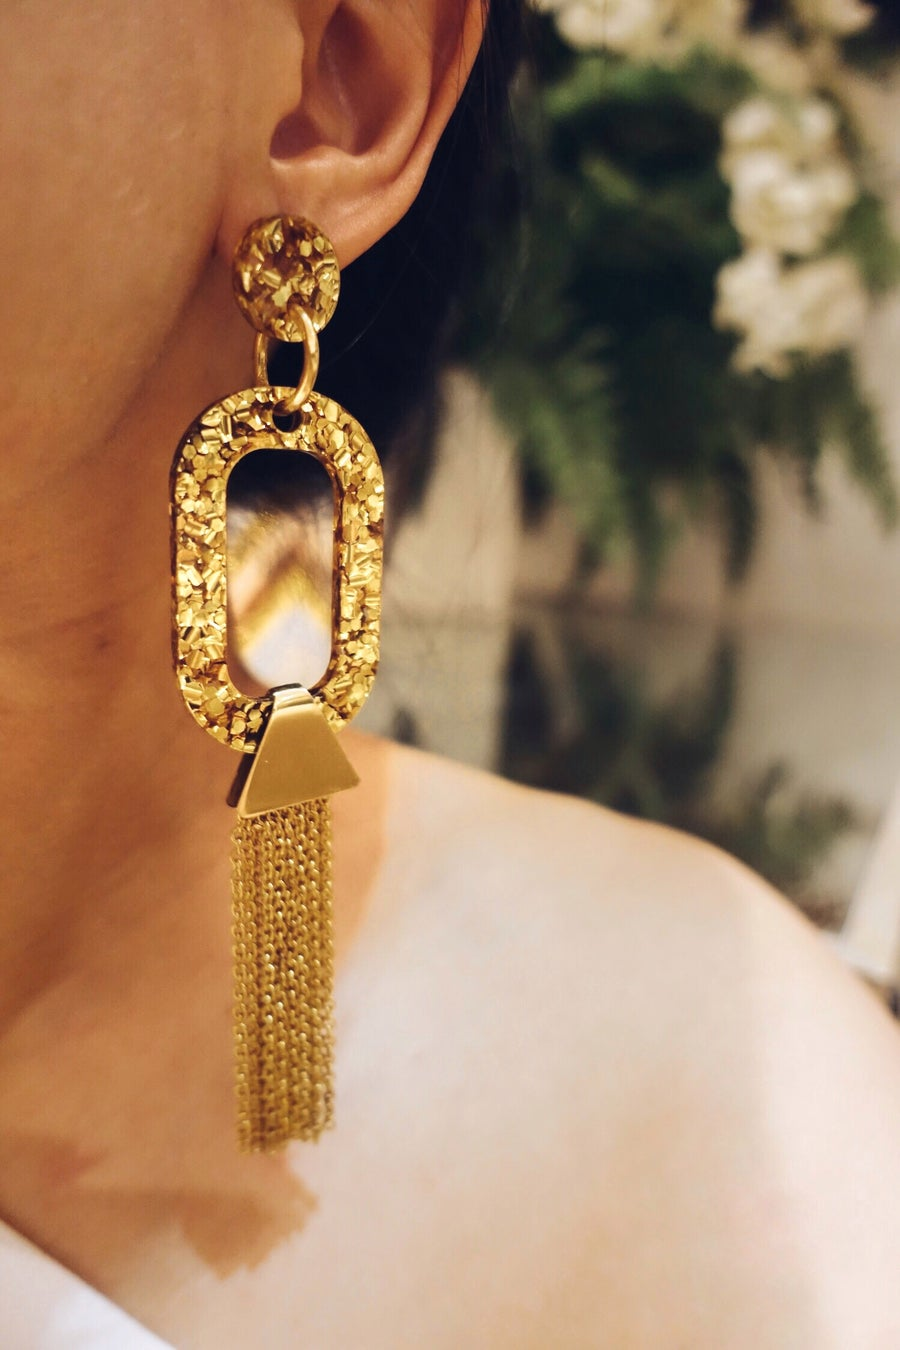 Image of The Opu earrings